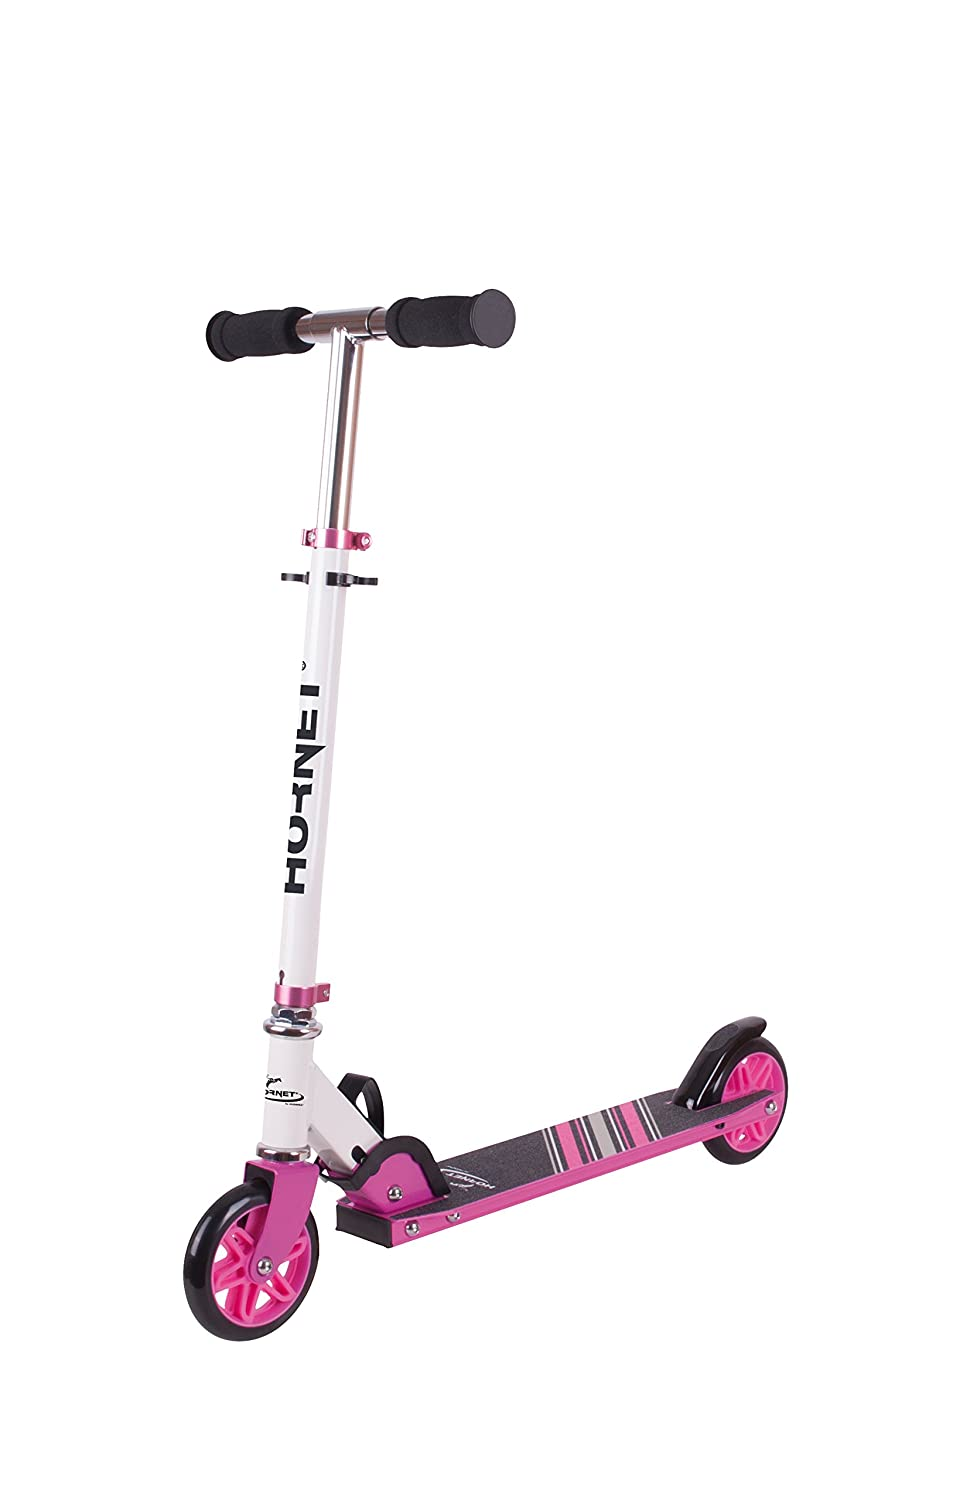 Hornet 14513 - Patinete 120, Big Wheel Scooter, Cubo de ...